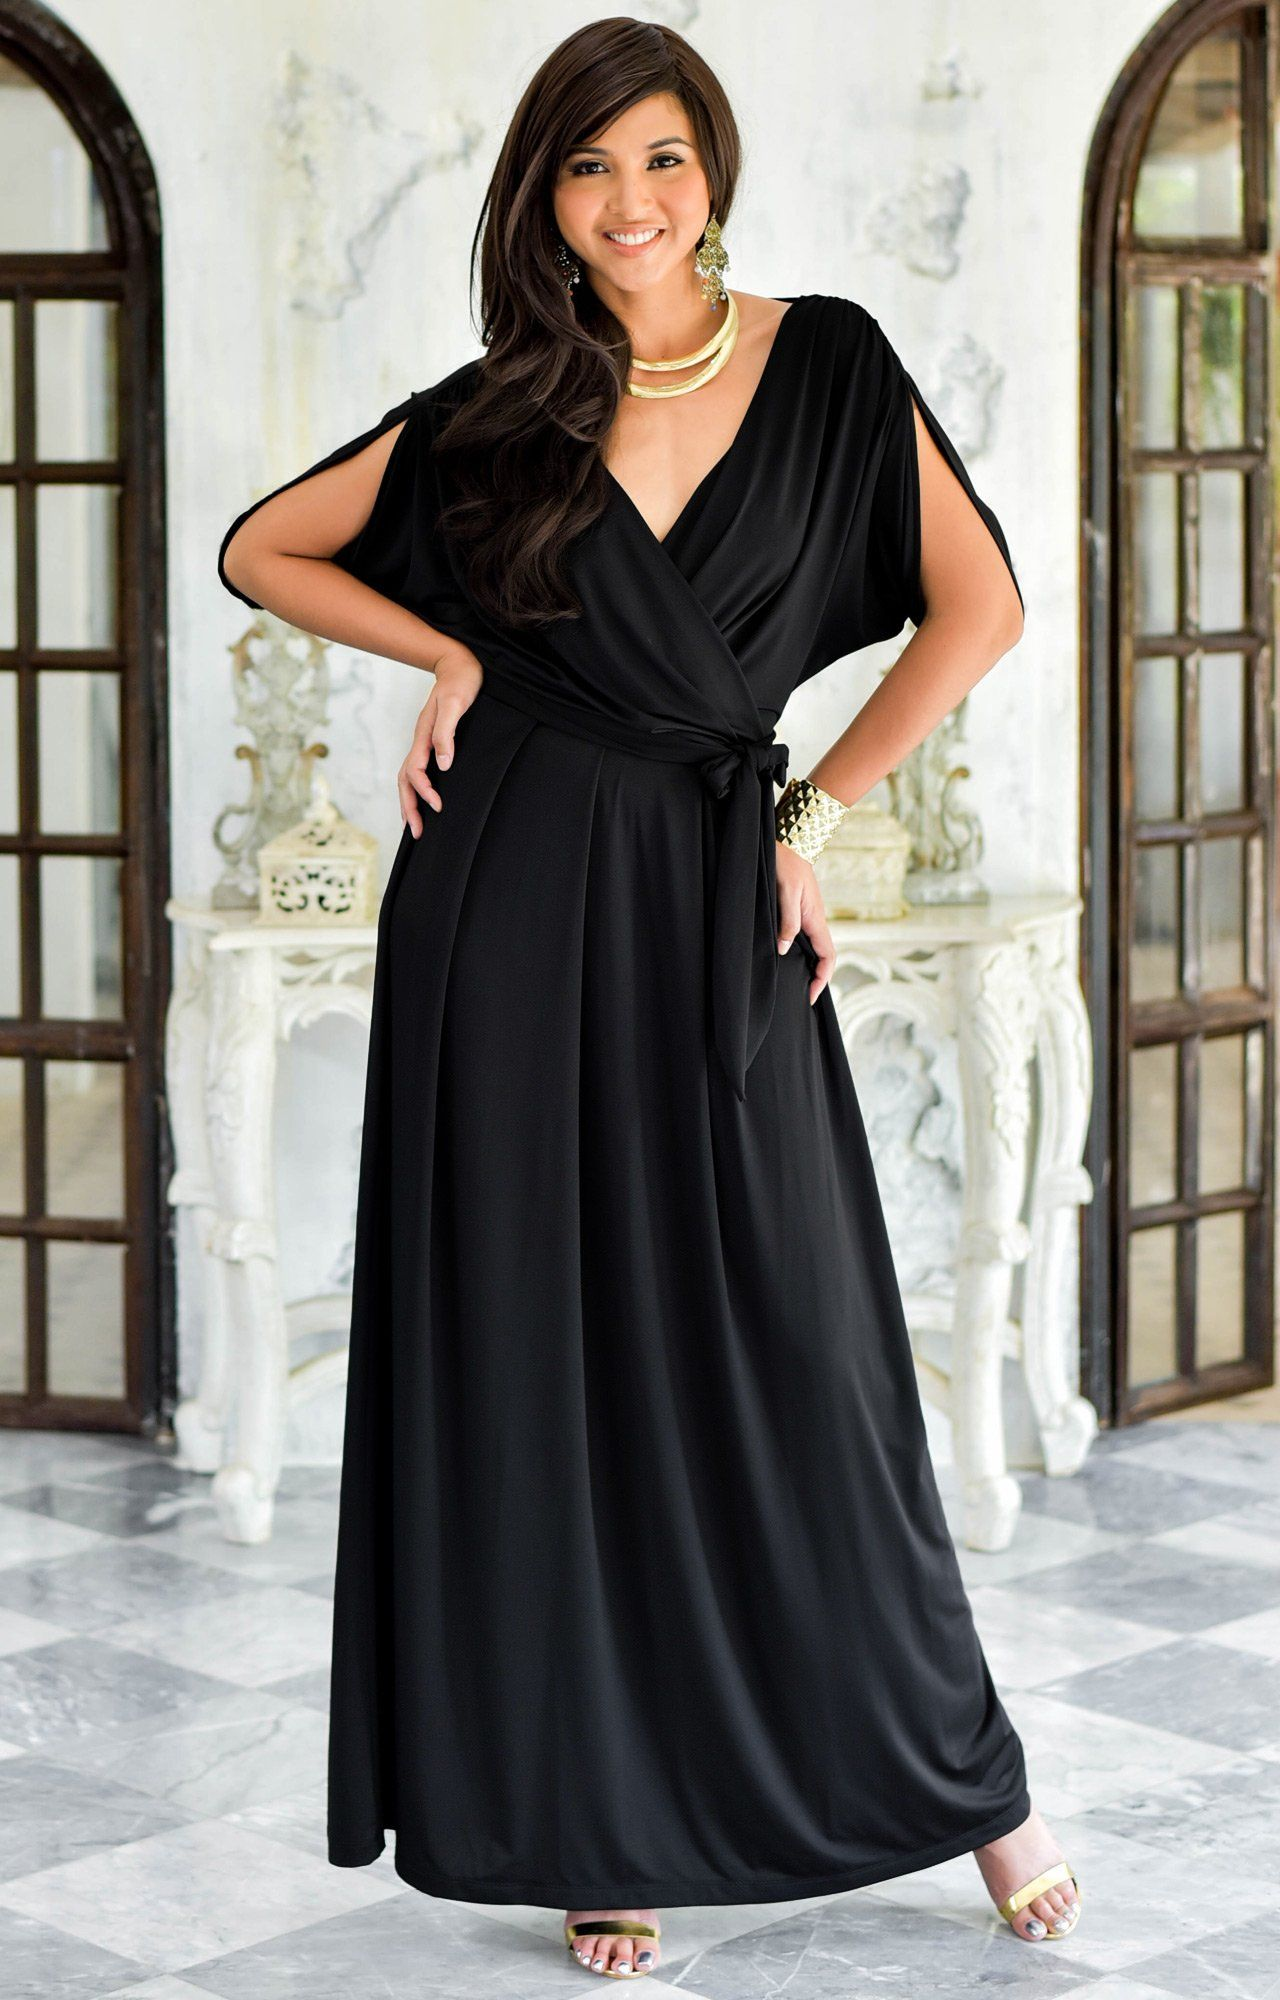 KOH KOH Plus Size Womens Long Formal Short Sleeve Cocktail Flowy VNeck  Casual Bridesmaid Wedding Guest a5887ed06